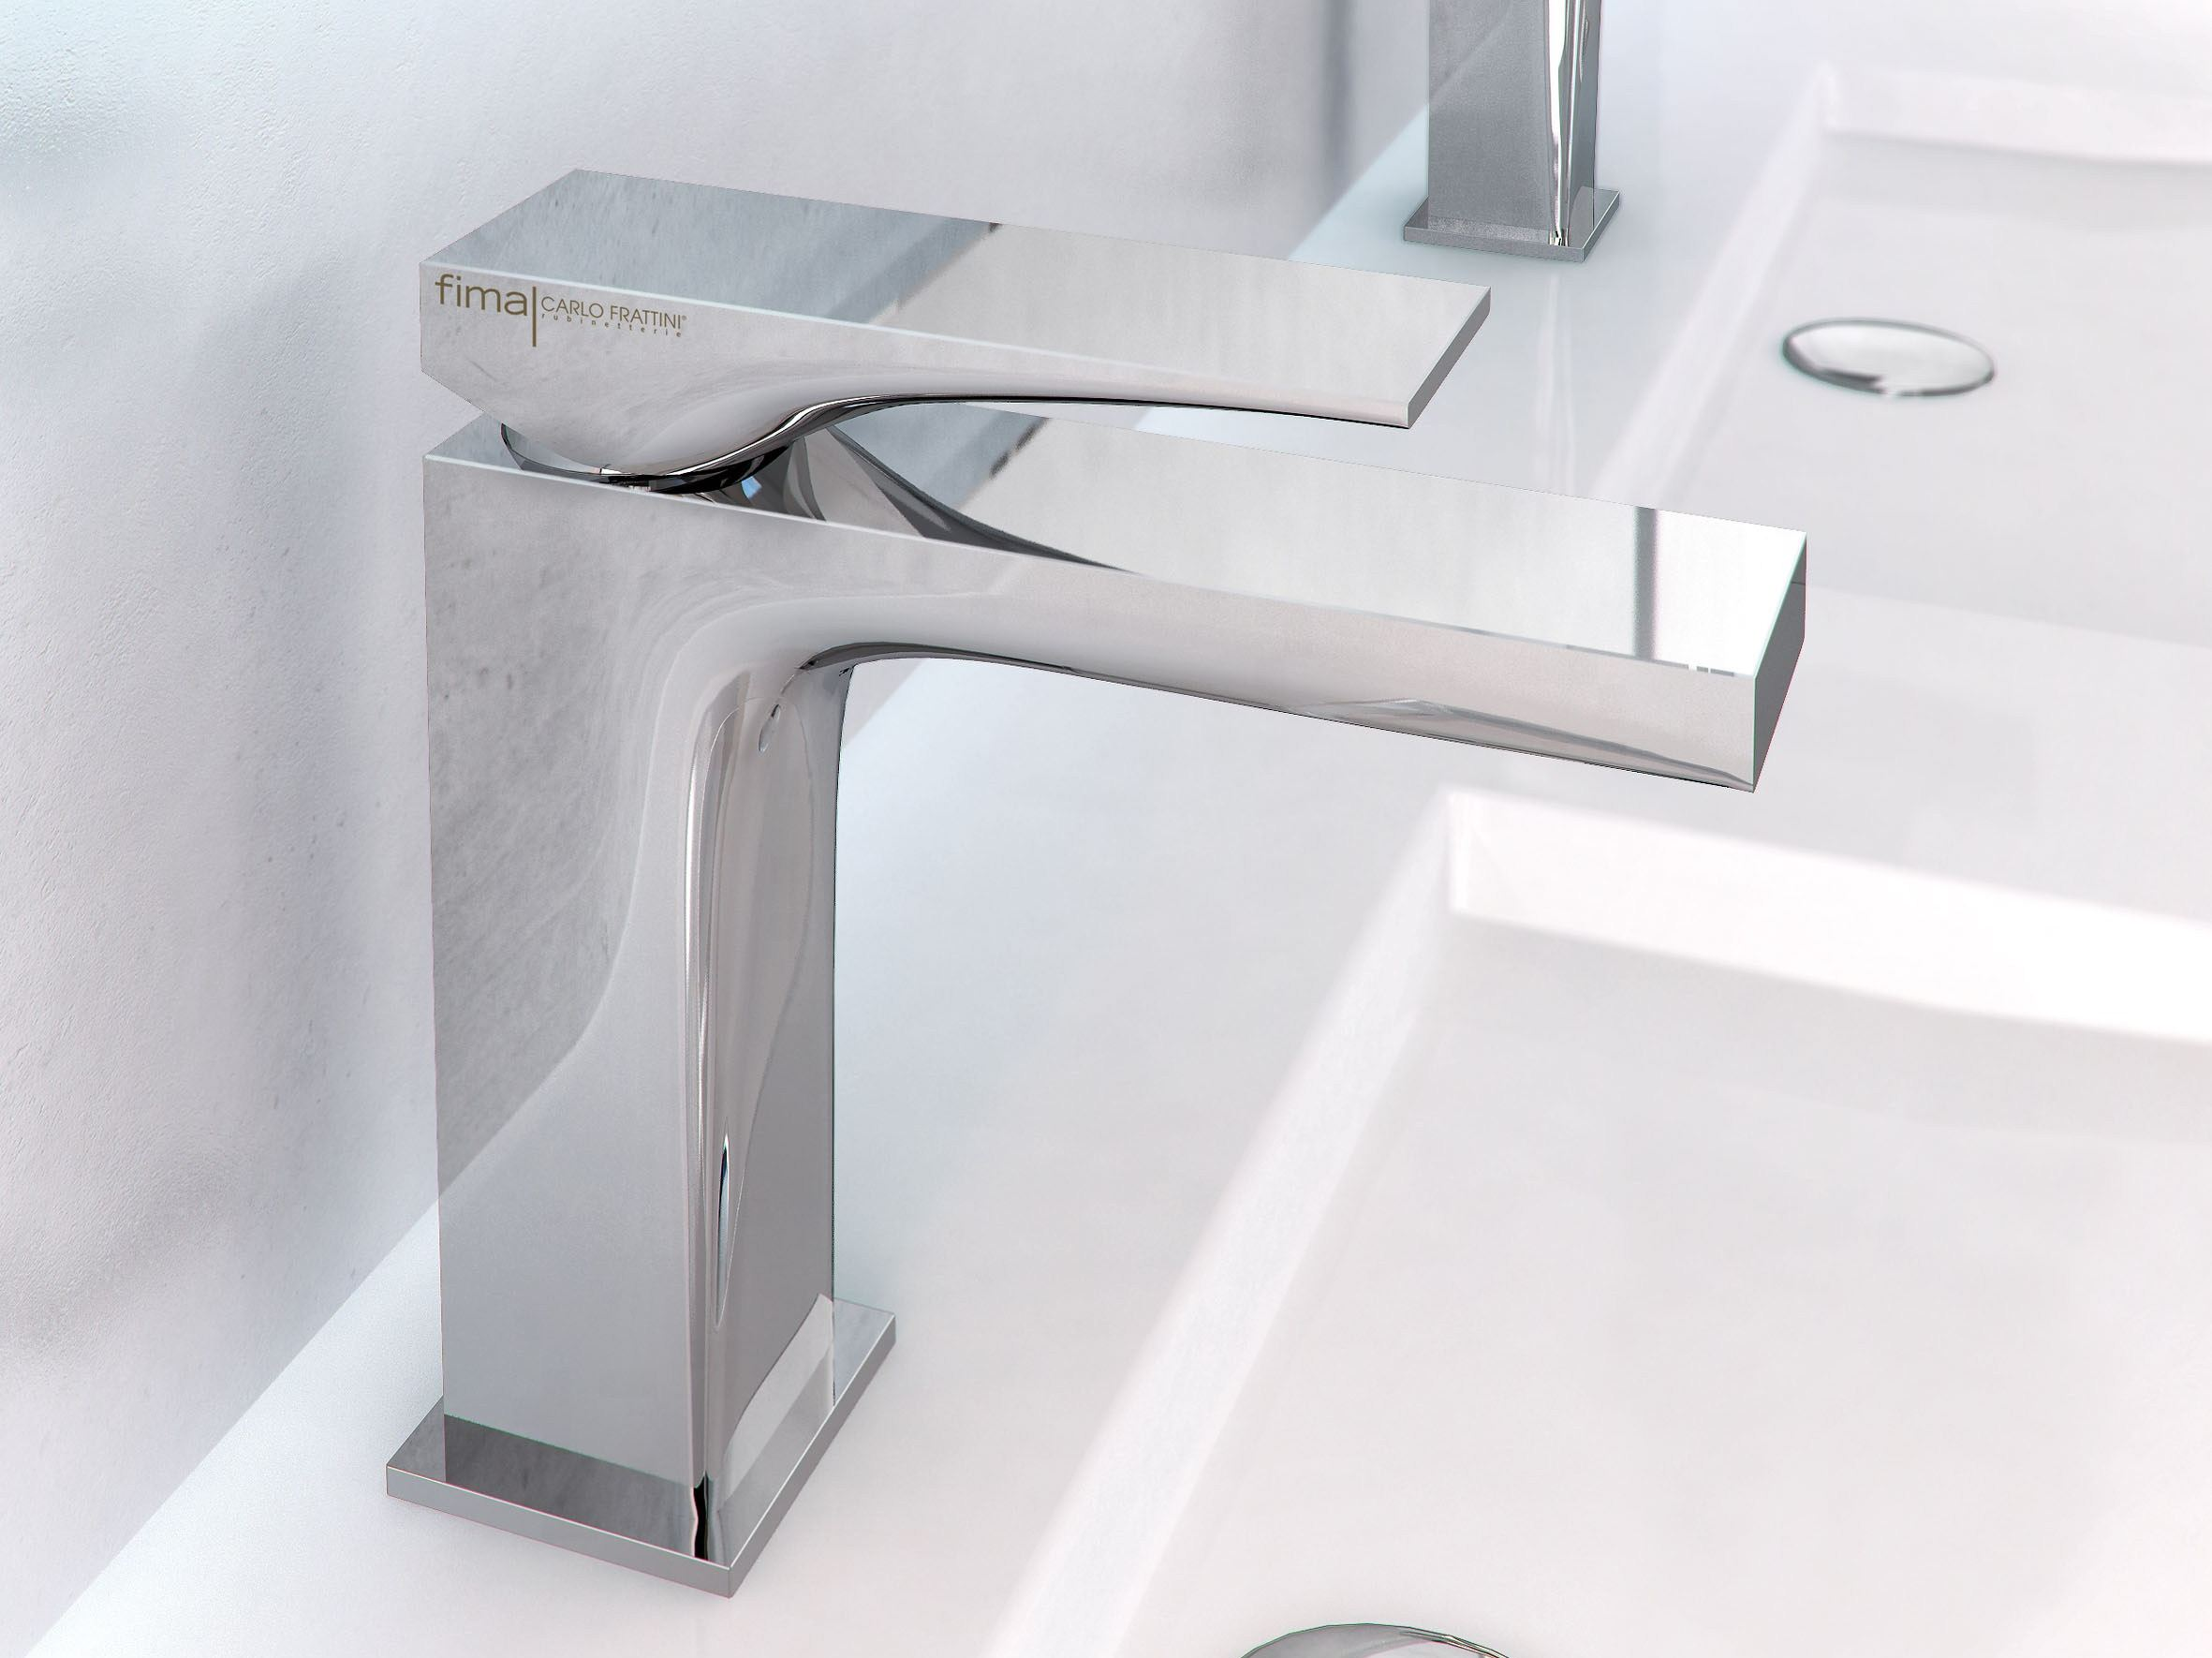 Zeta rubinetto per lavabo by fima carlo frattini design for Rubinetteria frattini